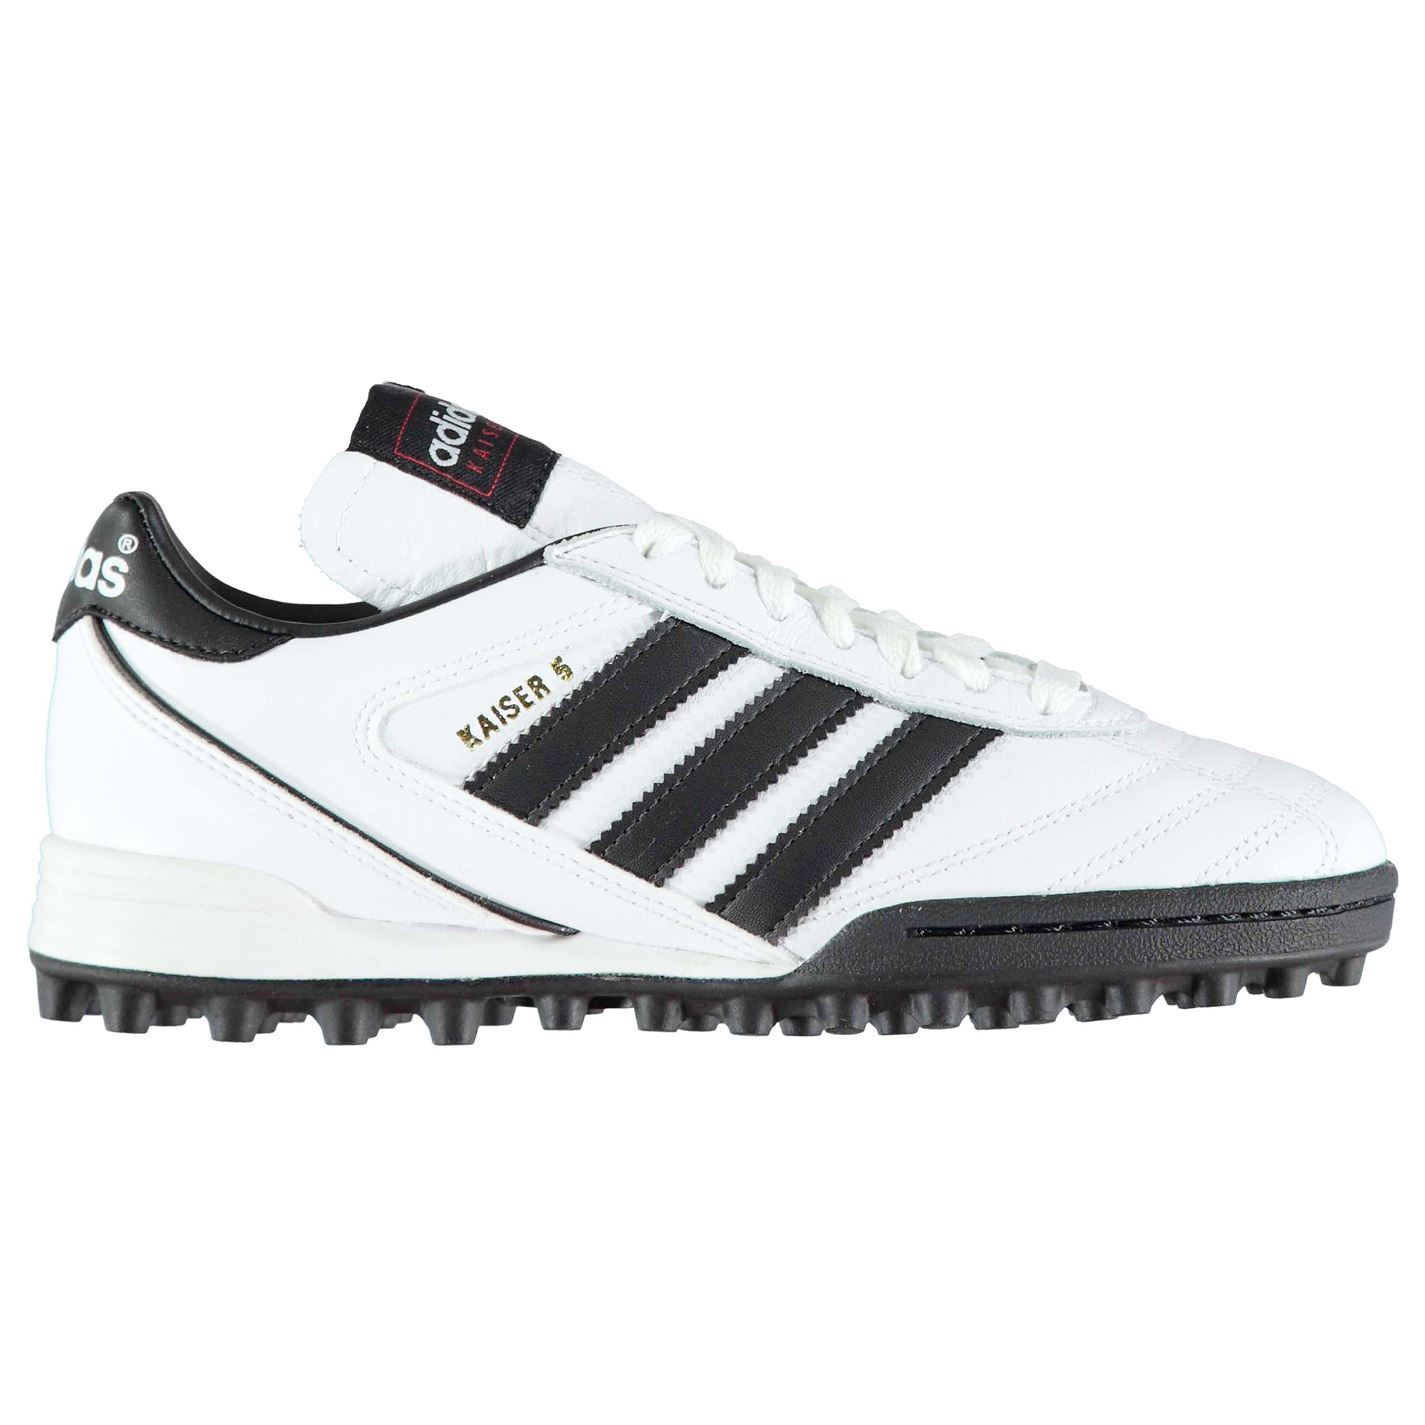 astro turf boots adults